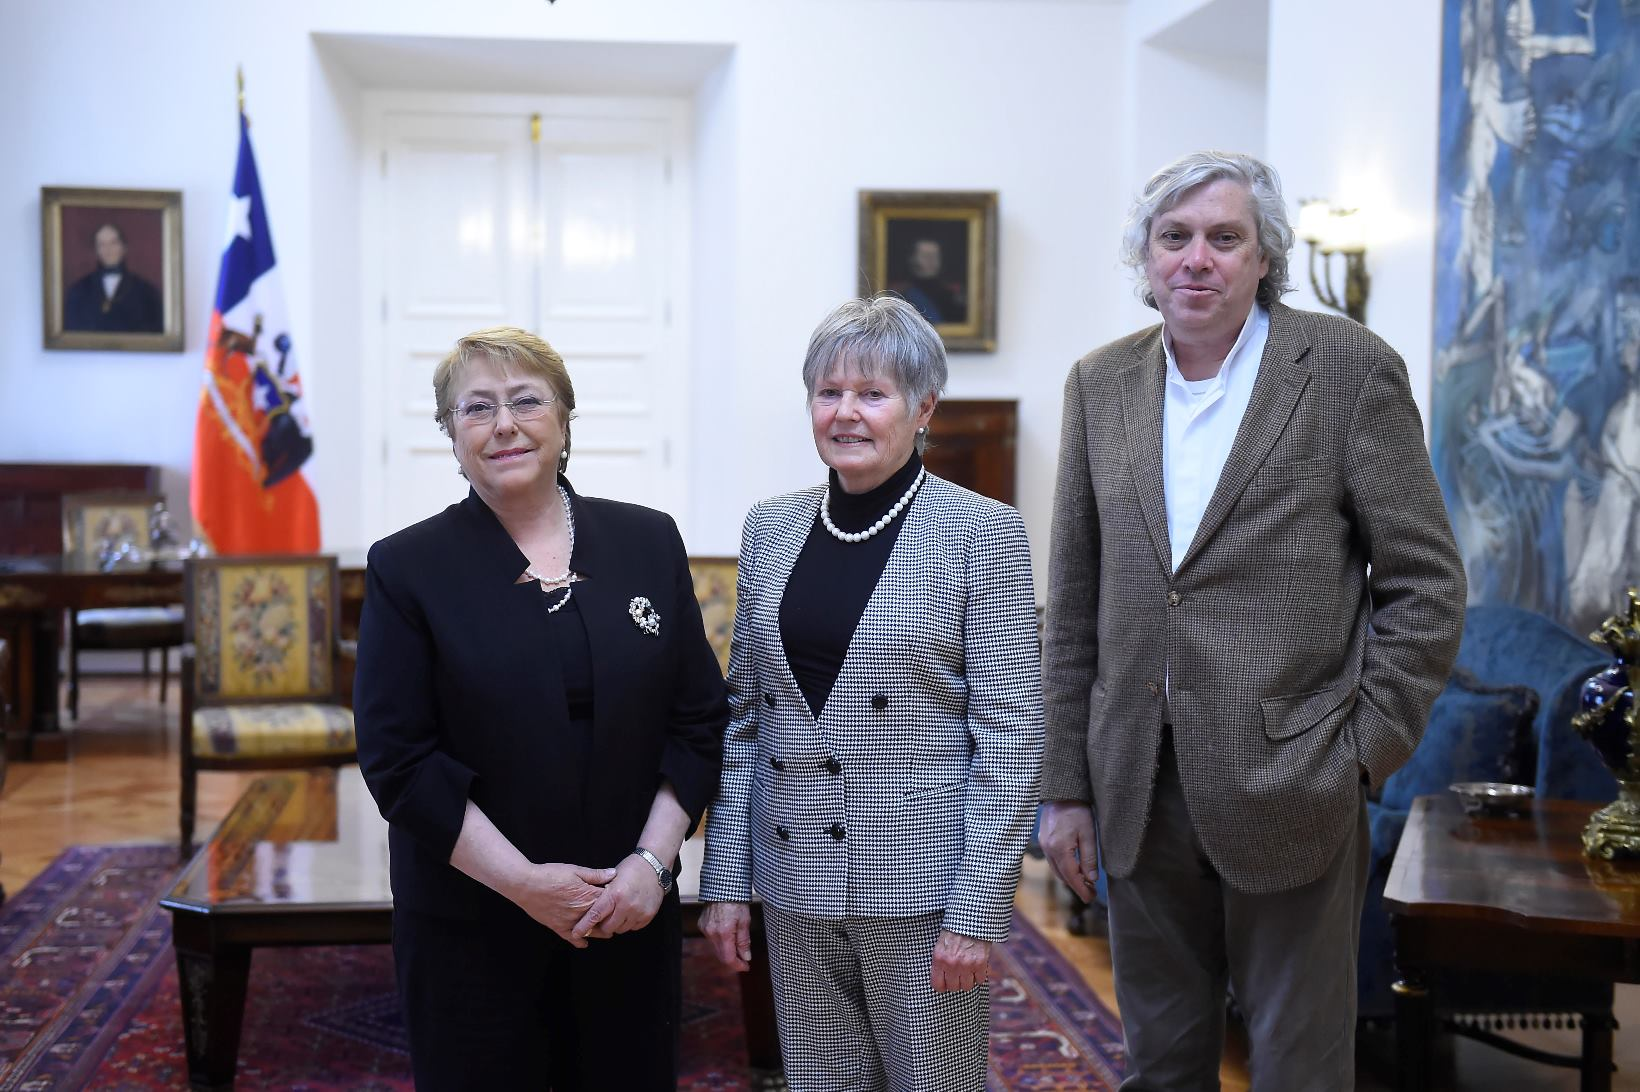 H.E. Michelle Bachelet, The President of Chile, receives Mme France Marquet, Trustee, Madanjeet Singh foundation and Mr Francisco  Javier Estevez Valencia, laureate 2014 of the UNESCO Madanjeet Singh prize for the promotion of tolerance and non-violence